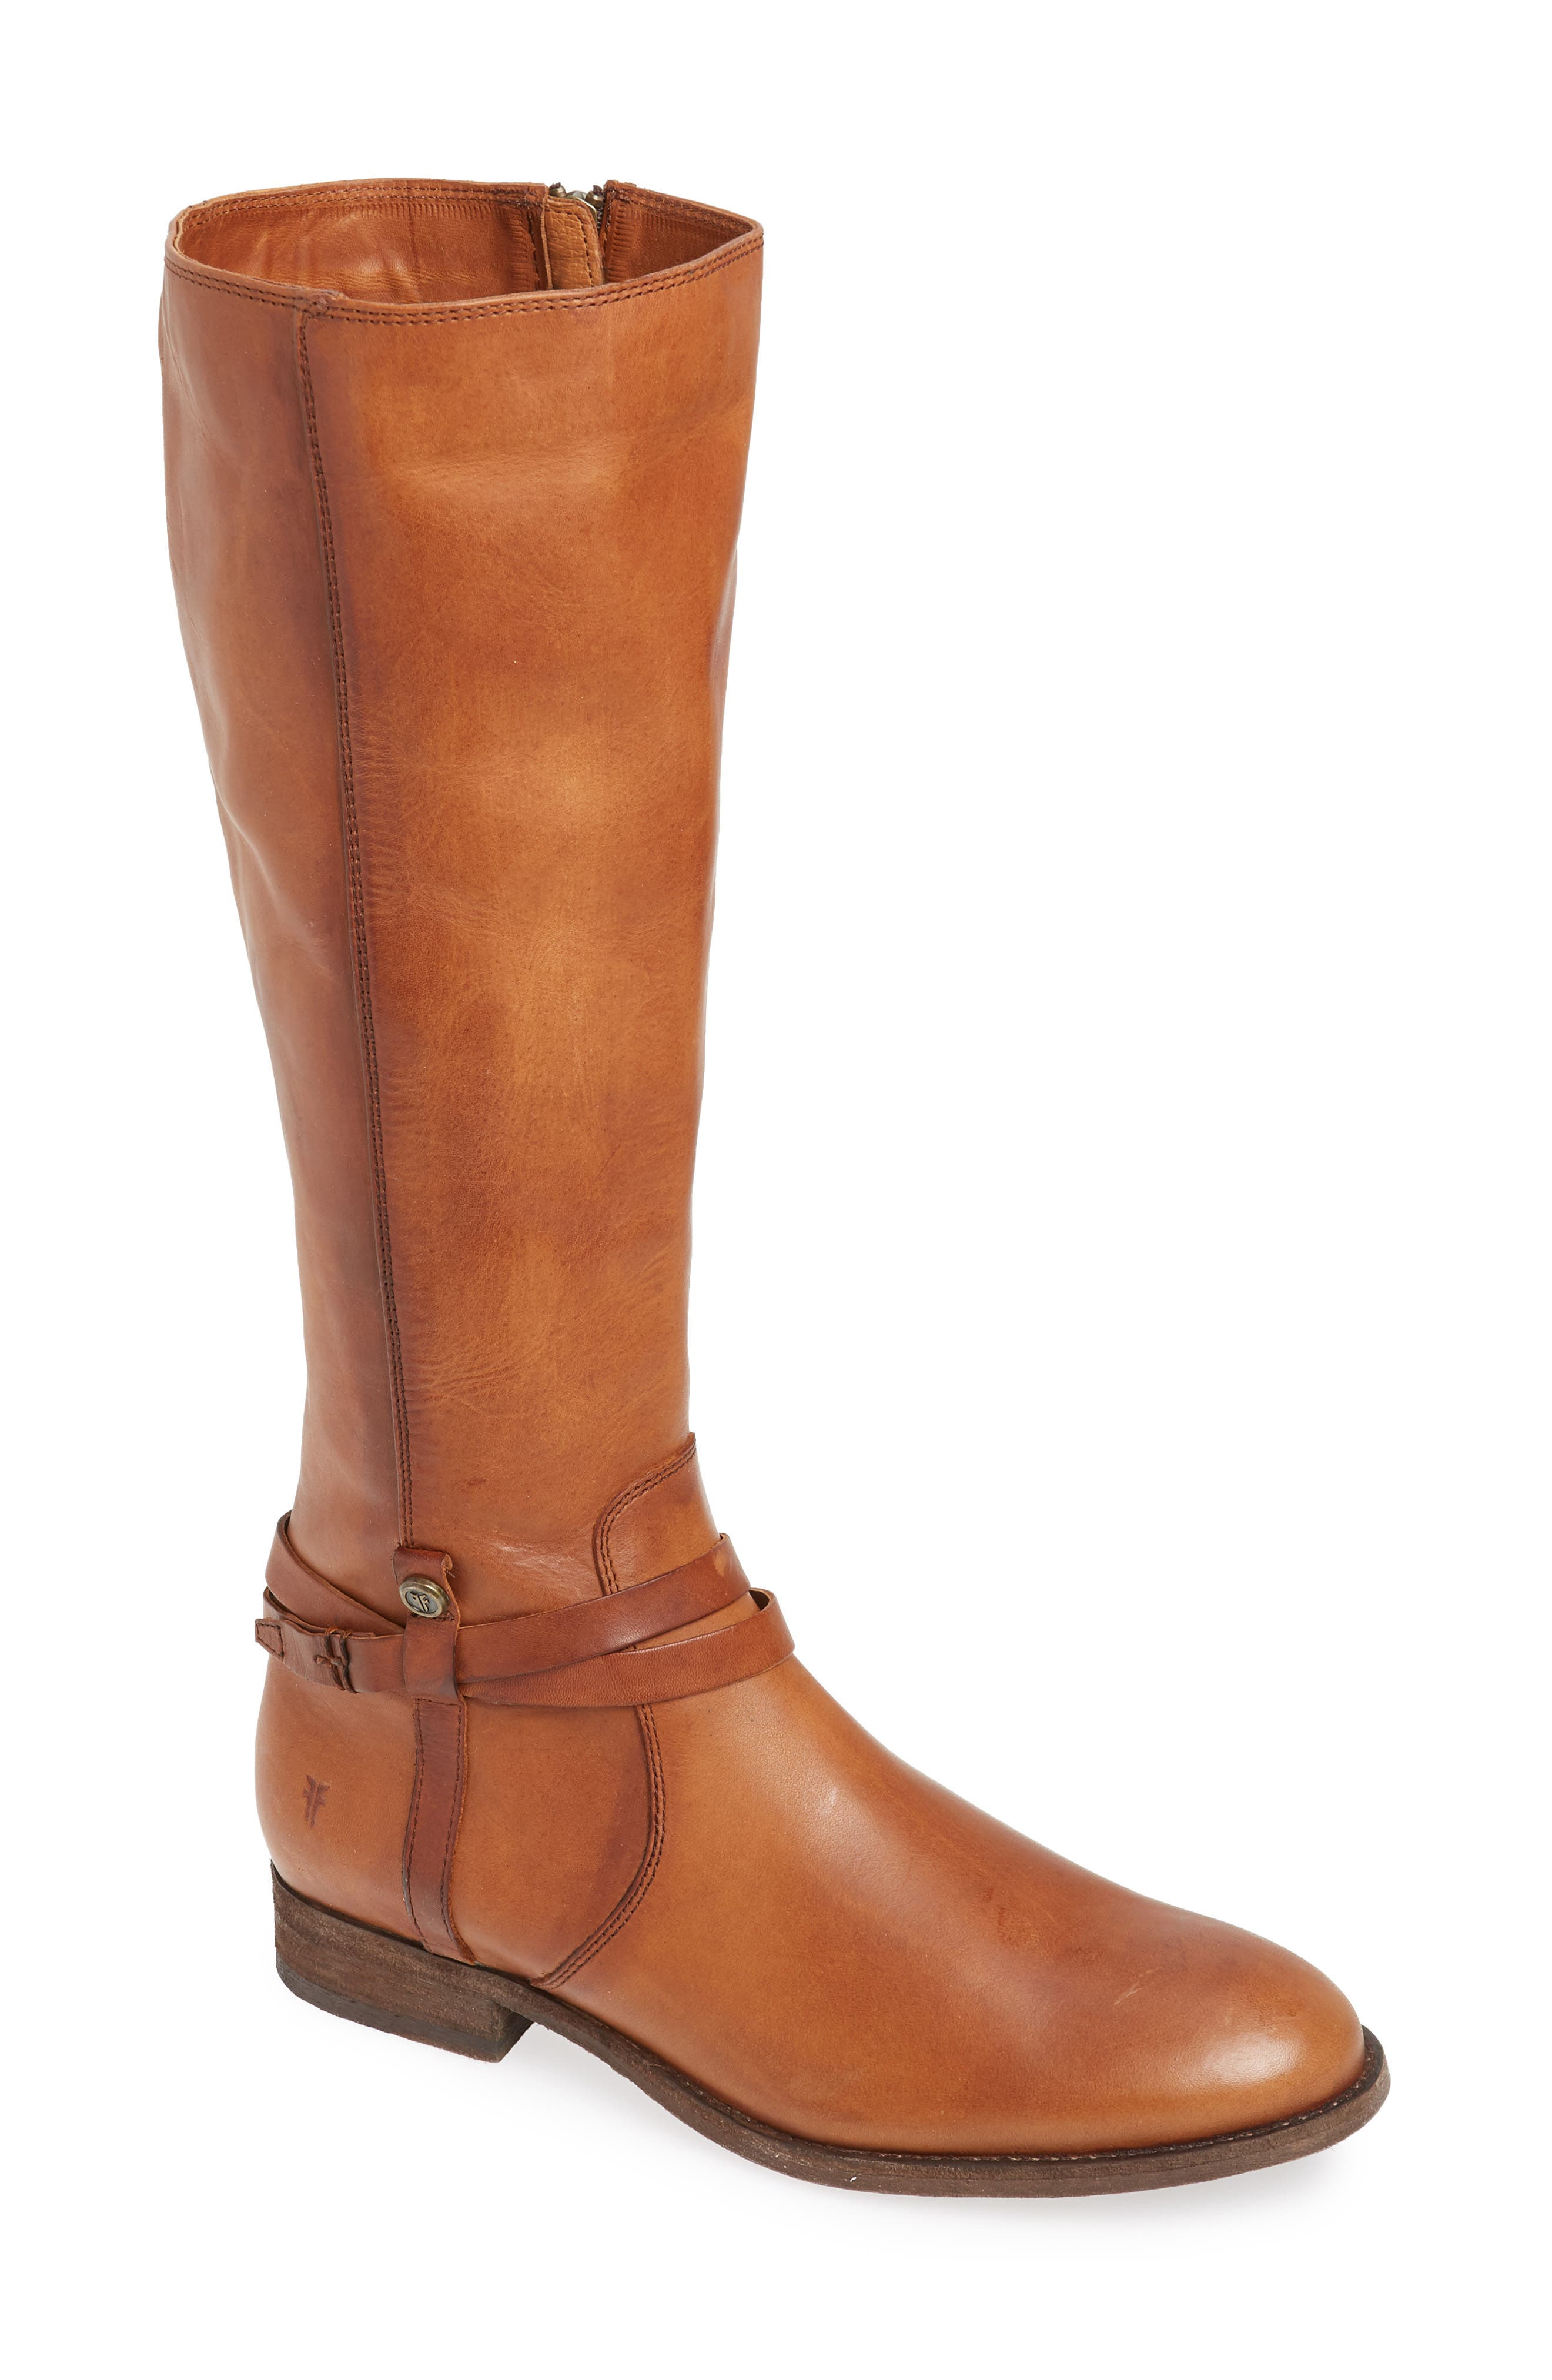 Frye Melissa Belted Knee-High Riding Boot, Regular Calf- Brown